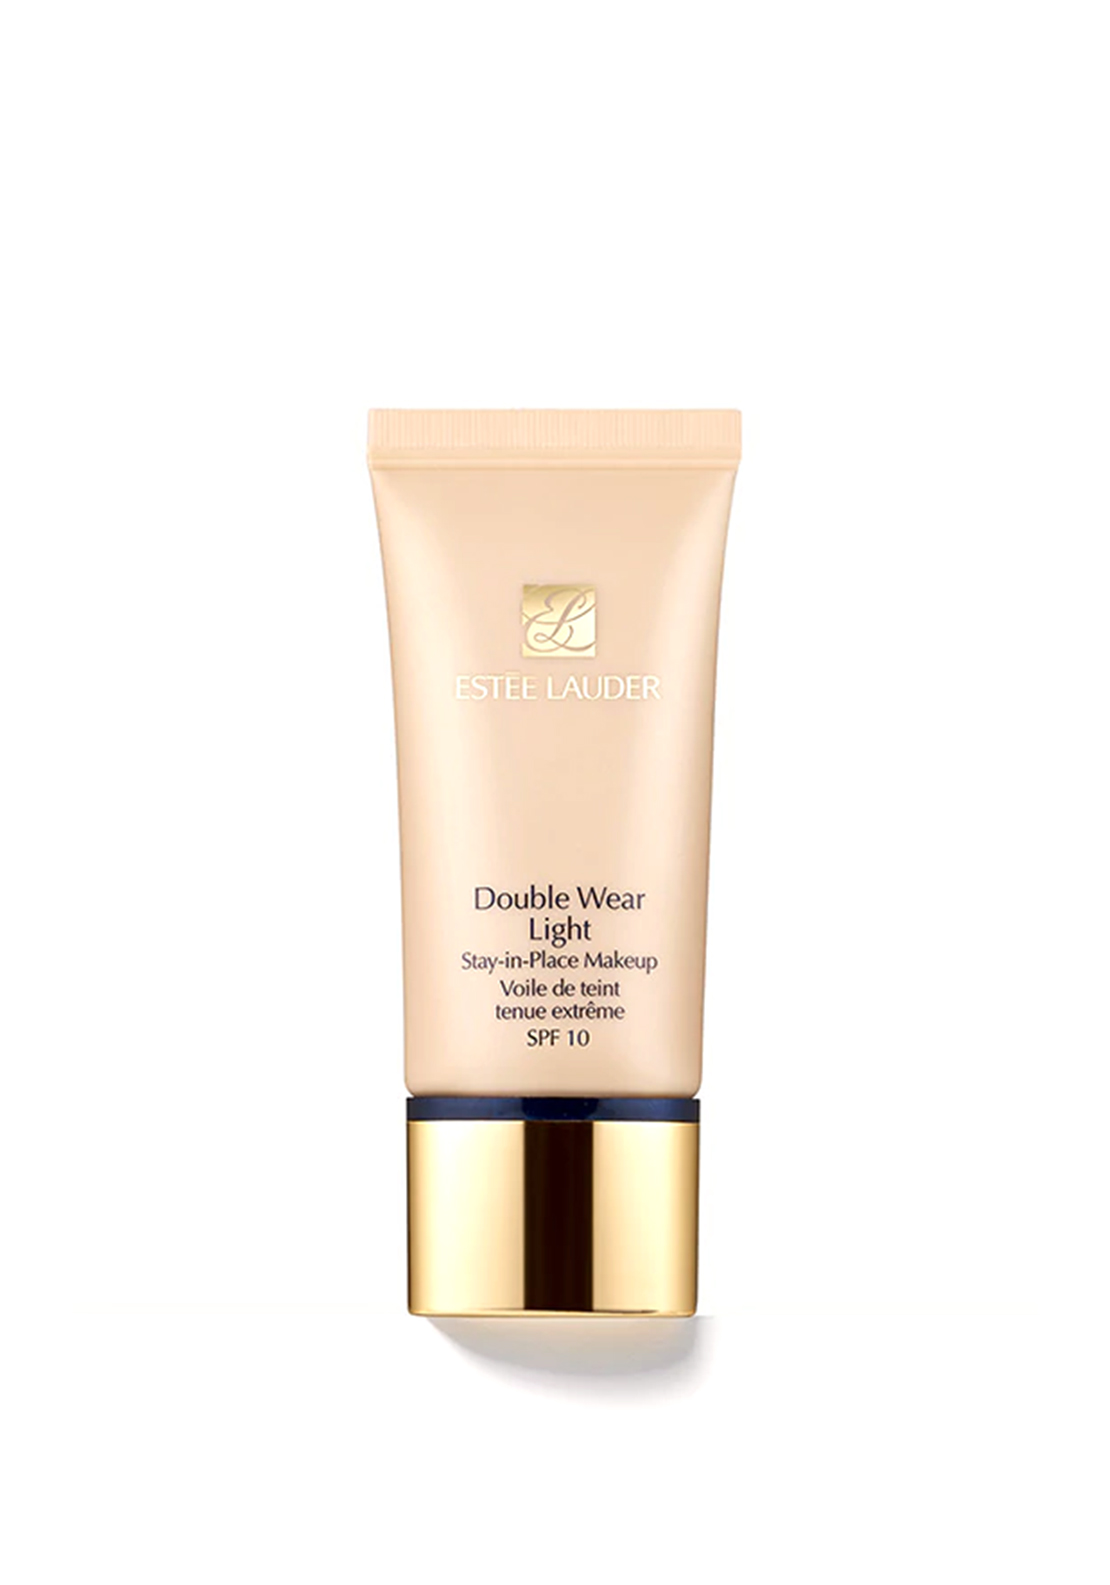 Estee Lauder Double Wear Light Stay-in-Place Make Up SPF 10, Intensity 0.5